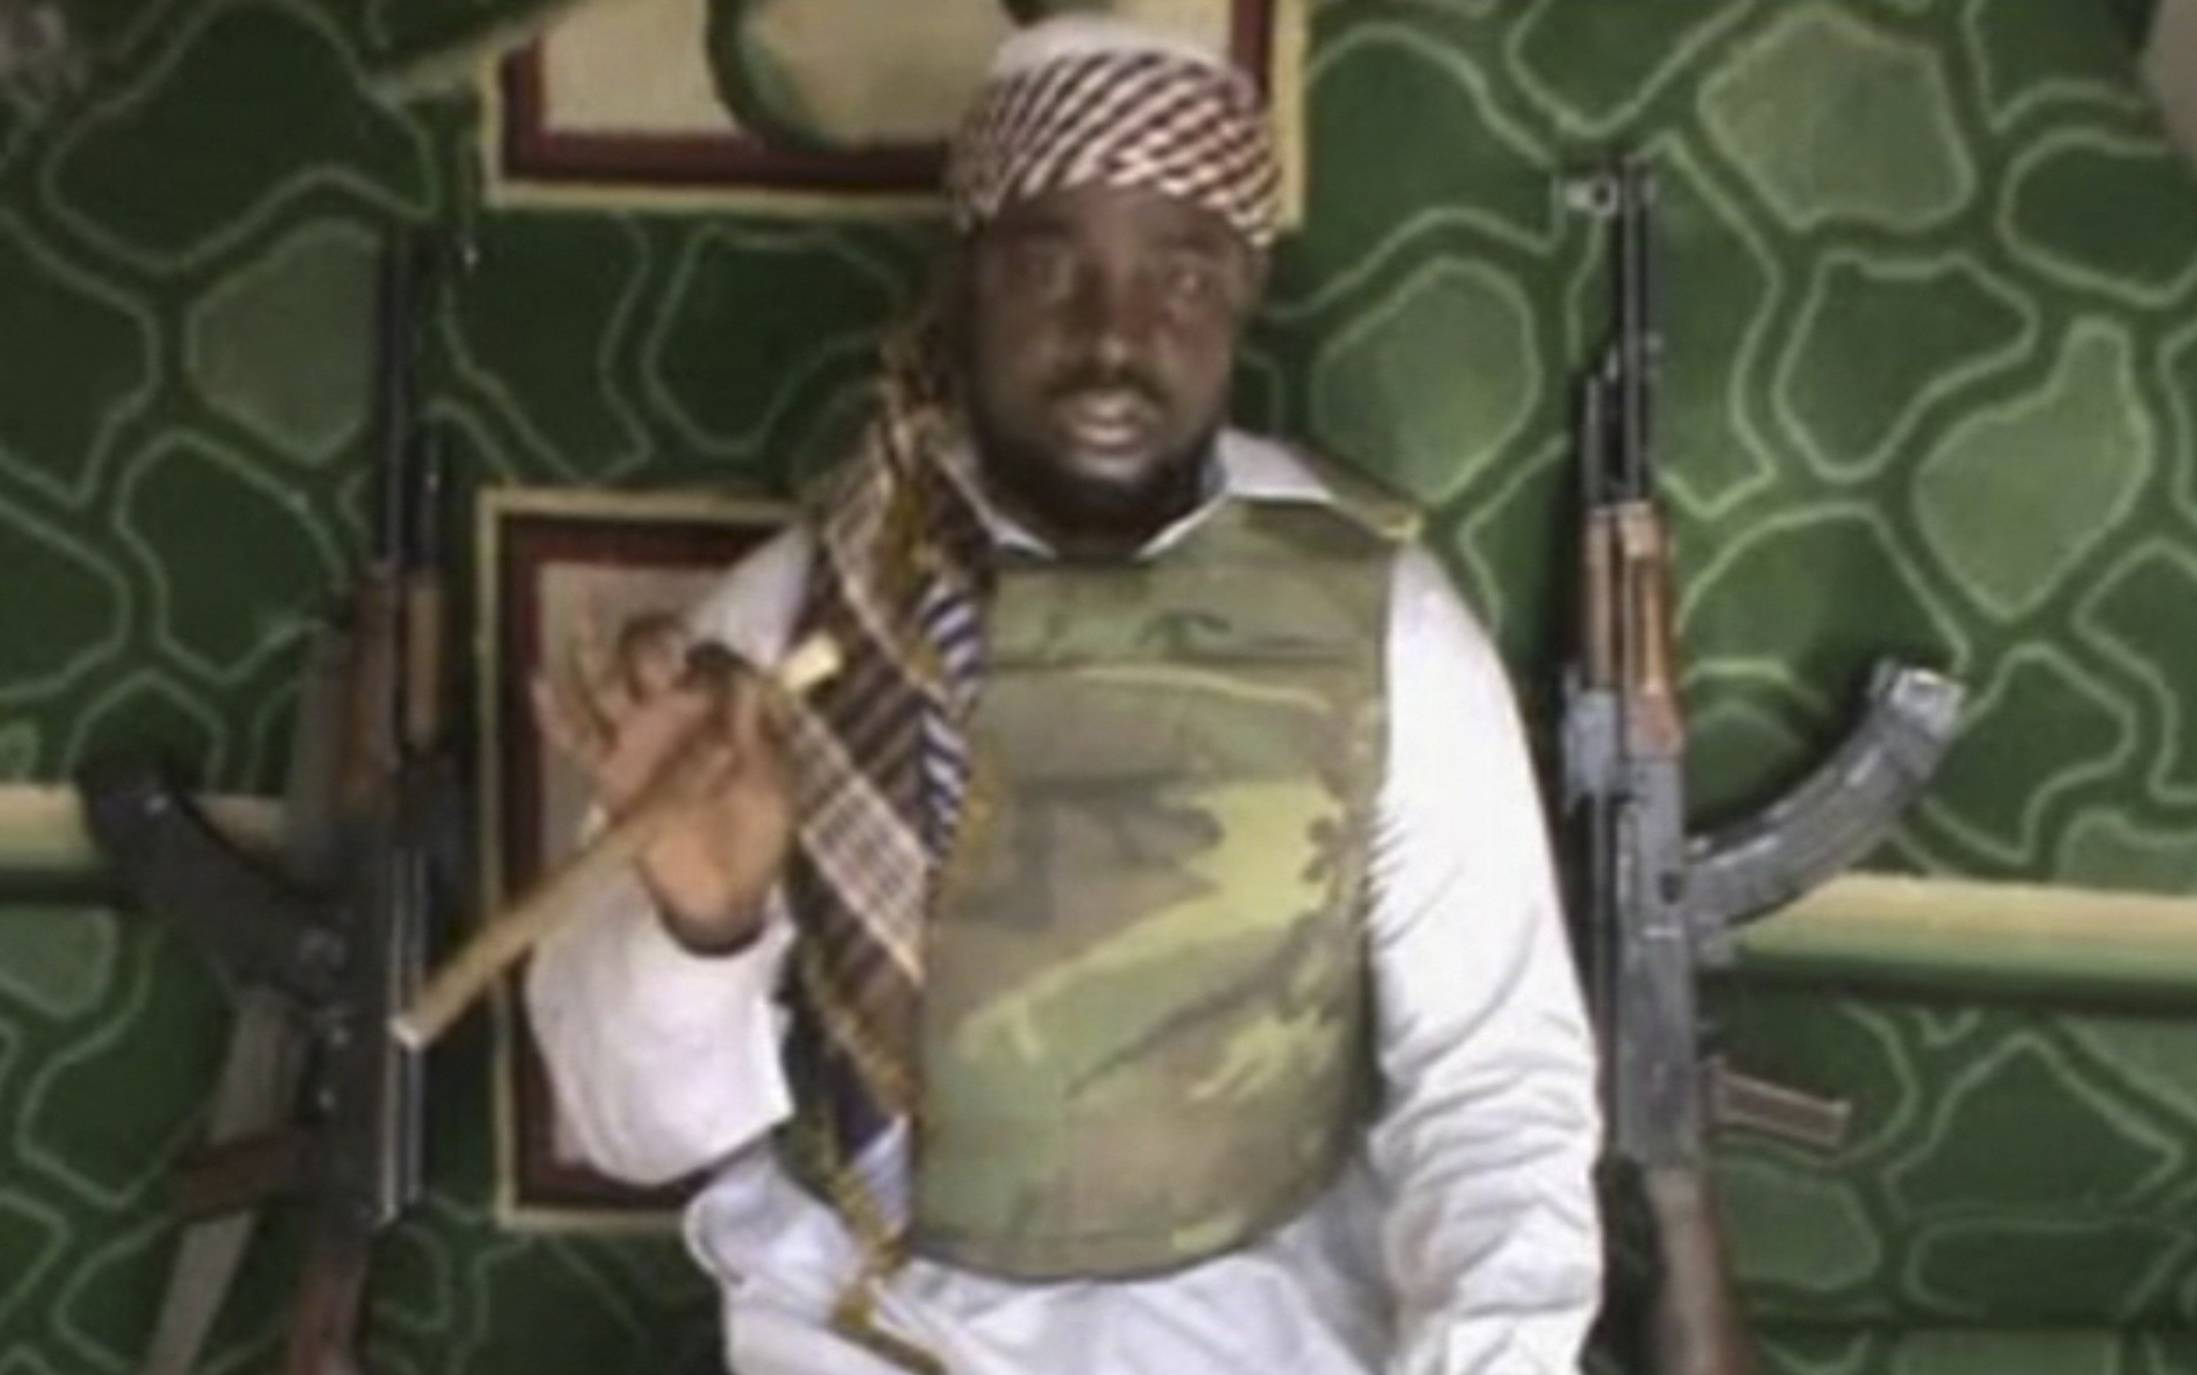 This still image is taken from a video posted by Boko Haram sympathizers, showing the leader of the radical Islamist sect, Imam Abubakar Shekau. Boko Haram has claimed responsibility for the April 15 mass abduction of nearly 300 teenage schoolgirls in northeast Nigeria.